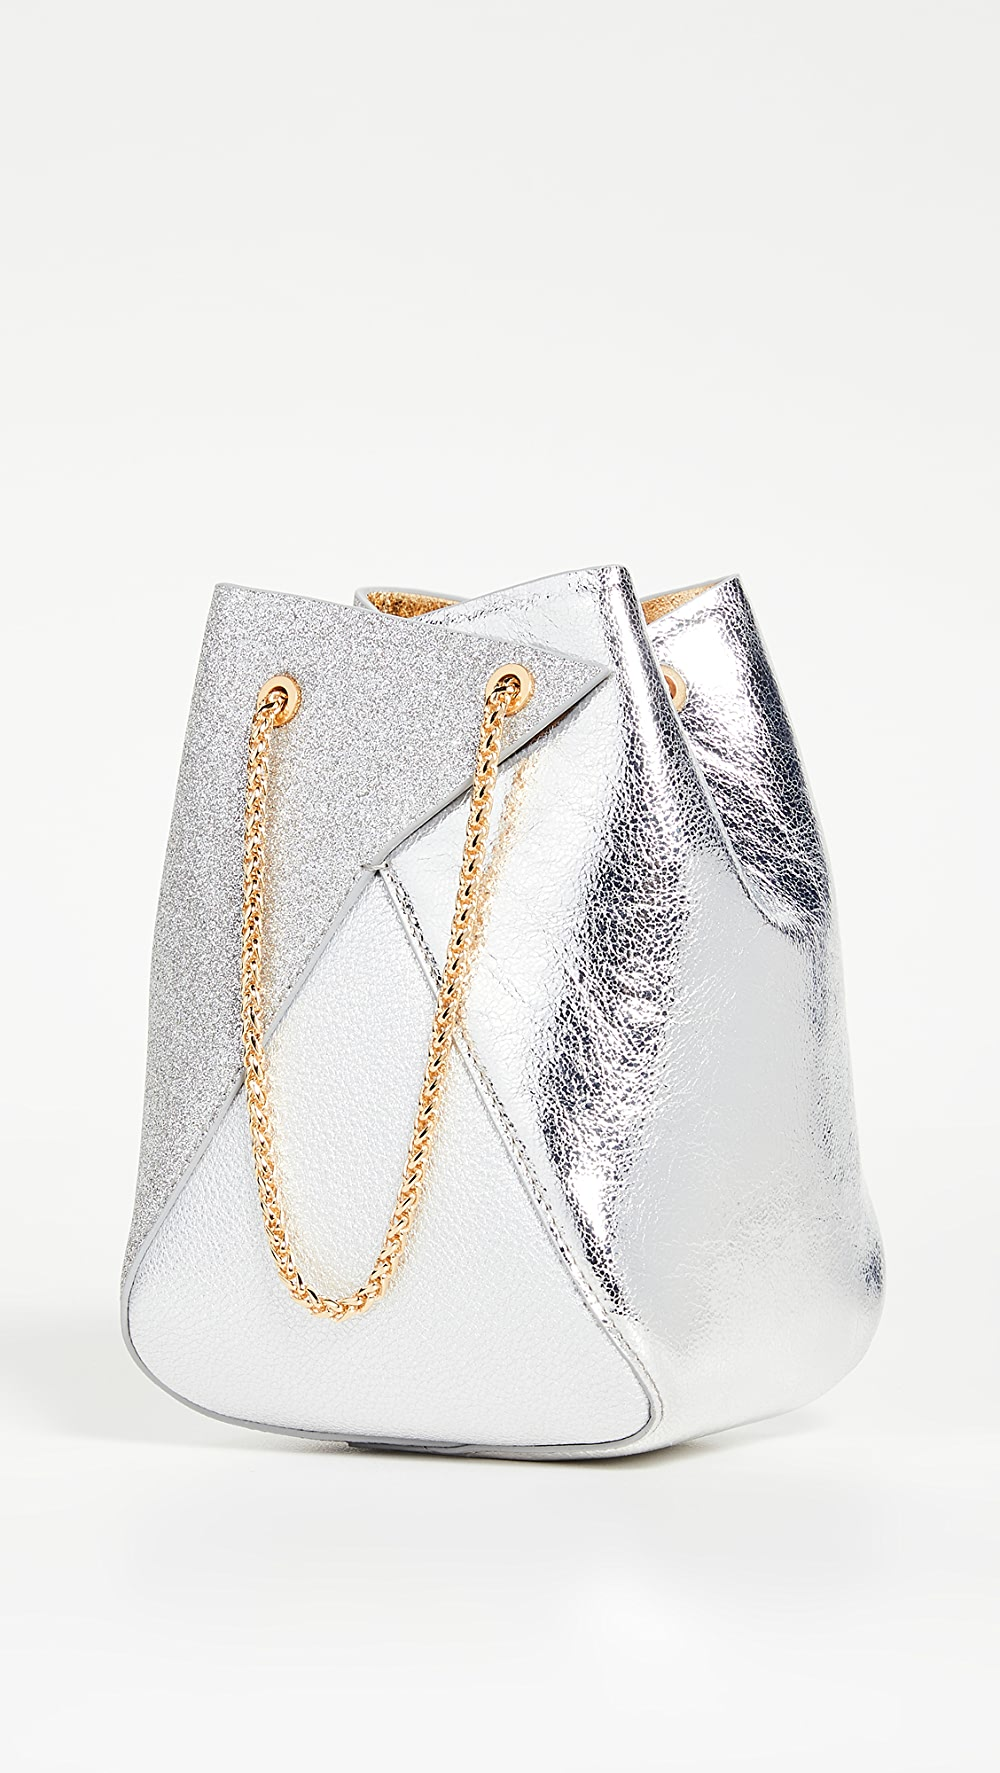 Aspiring The Volon - Mani Mini Bag To Clear Out Annoyance And Quench Thirst